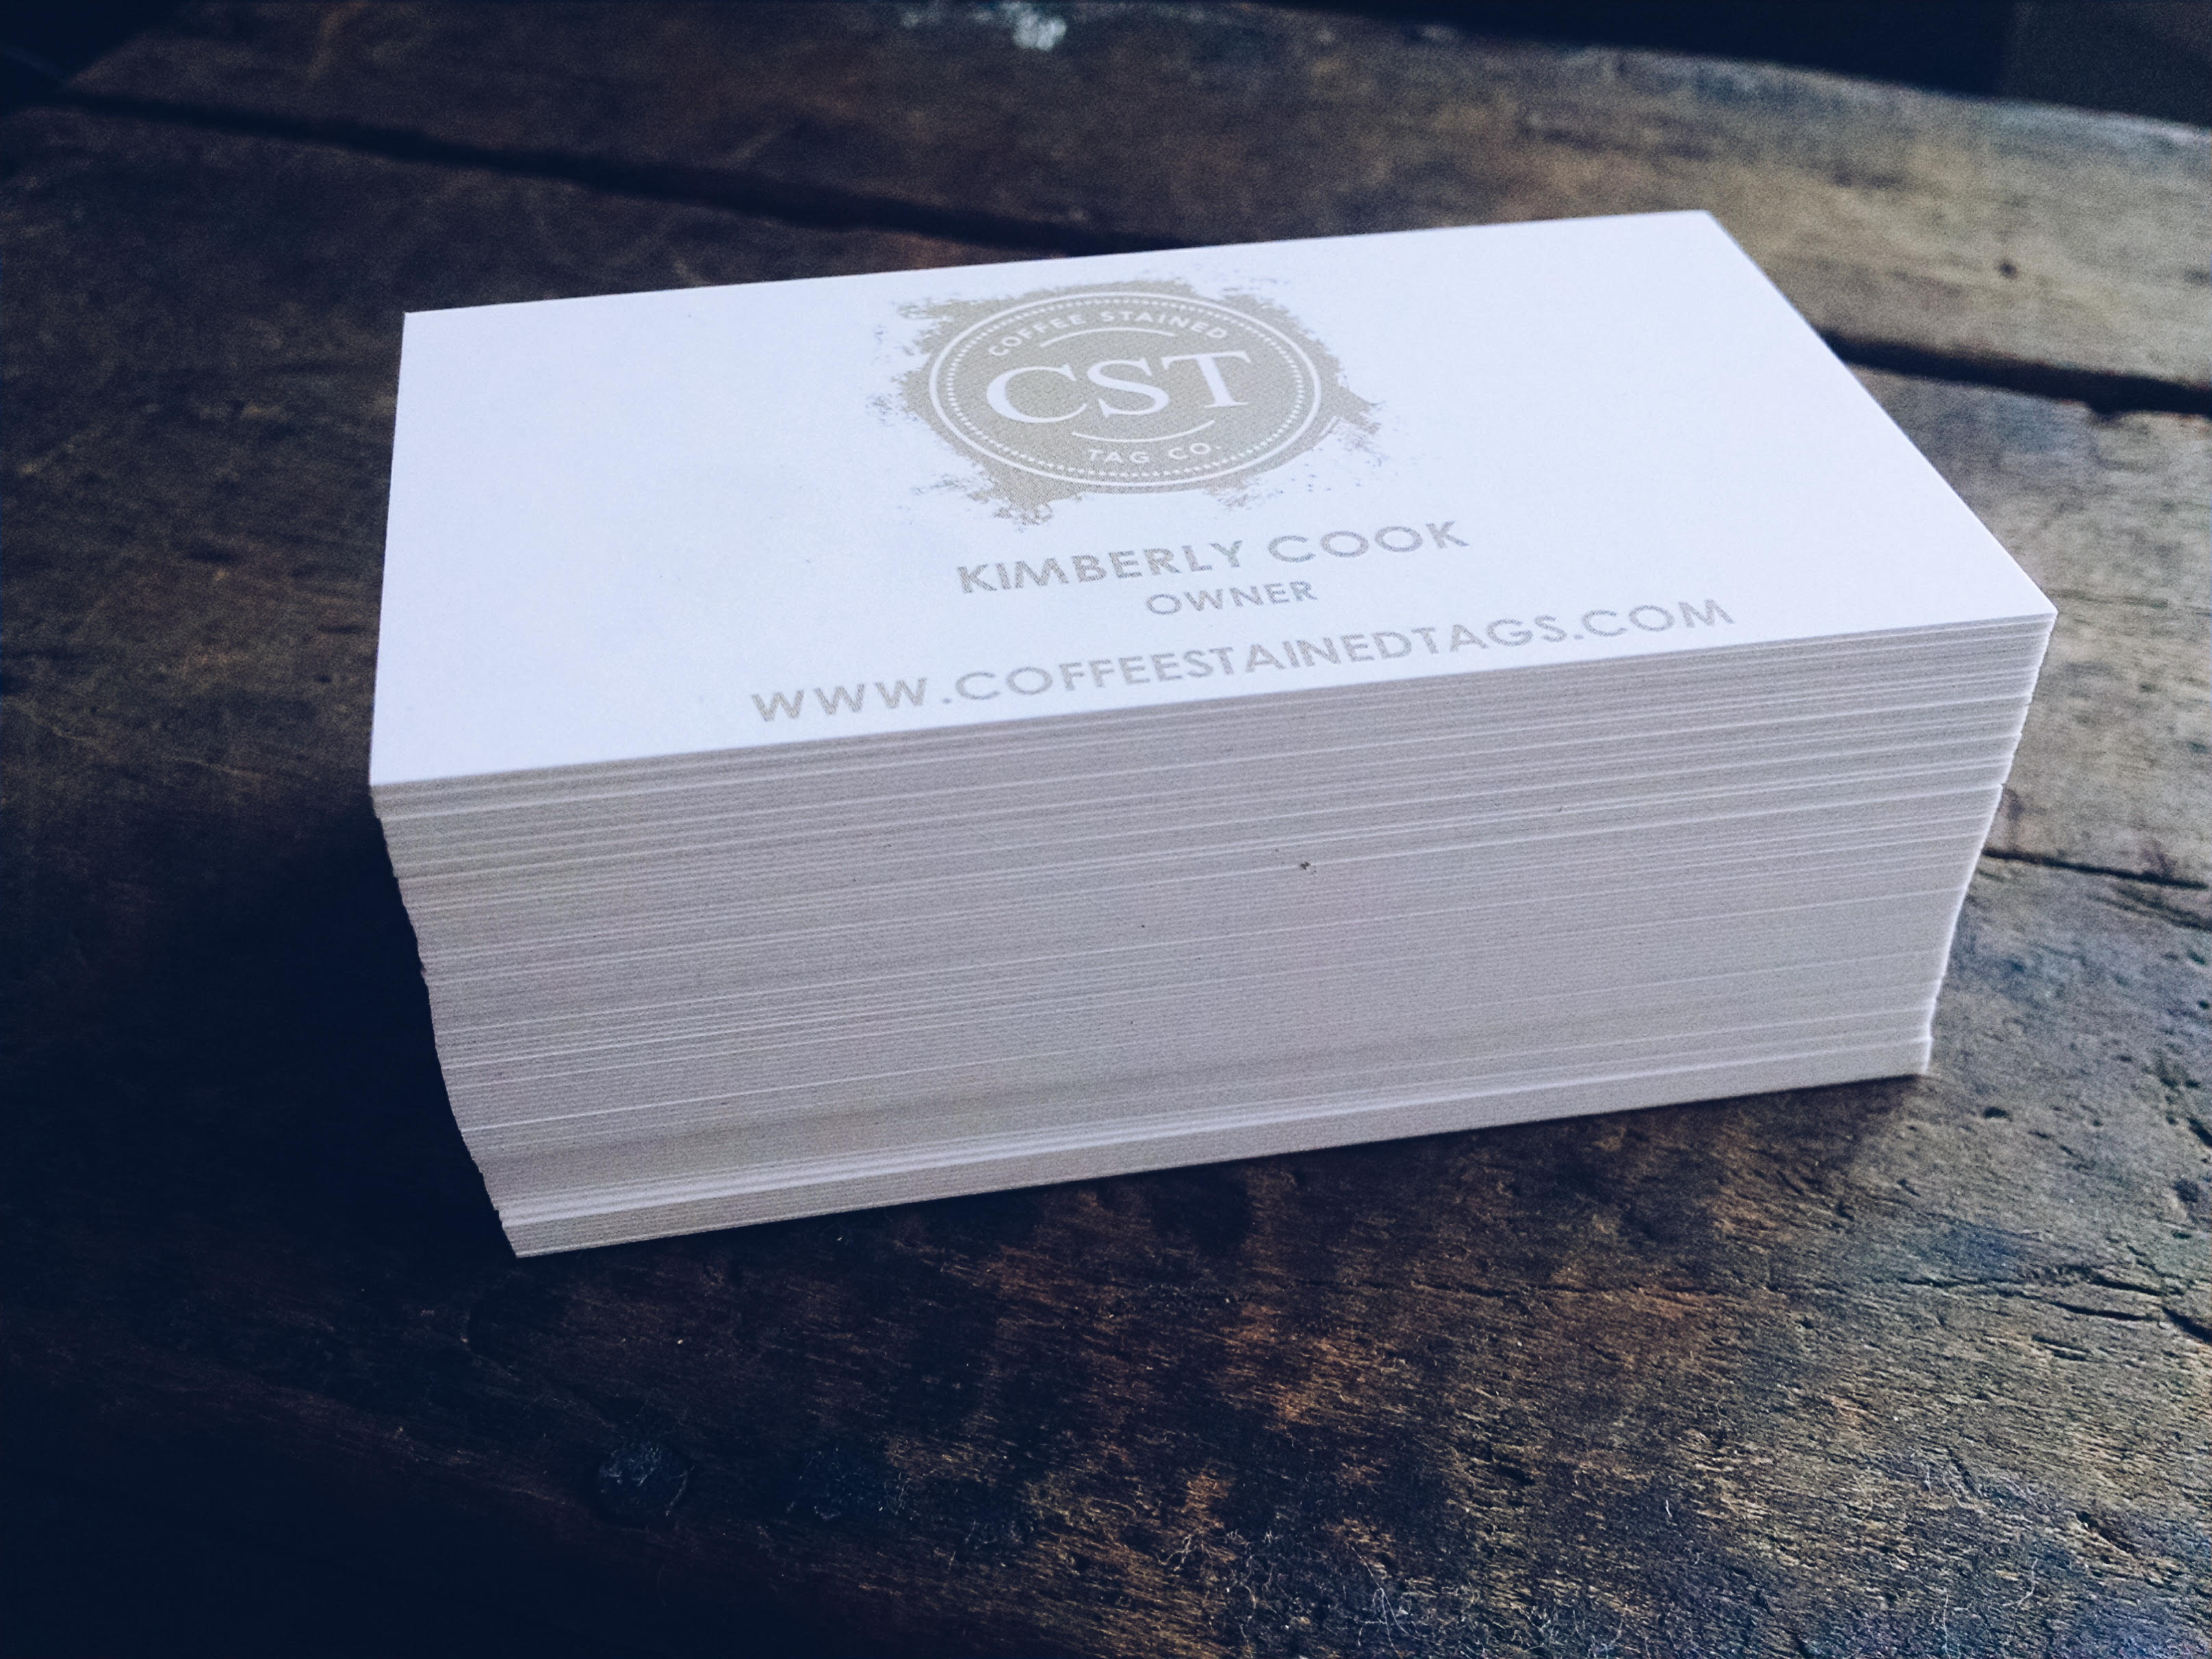 Custom Printed Business Cards – Coffee Stained Tag Company